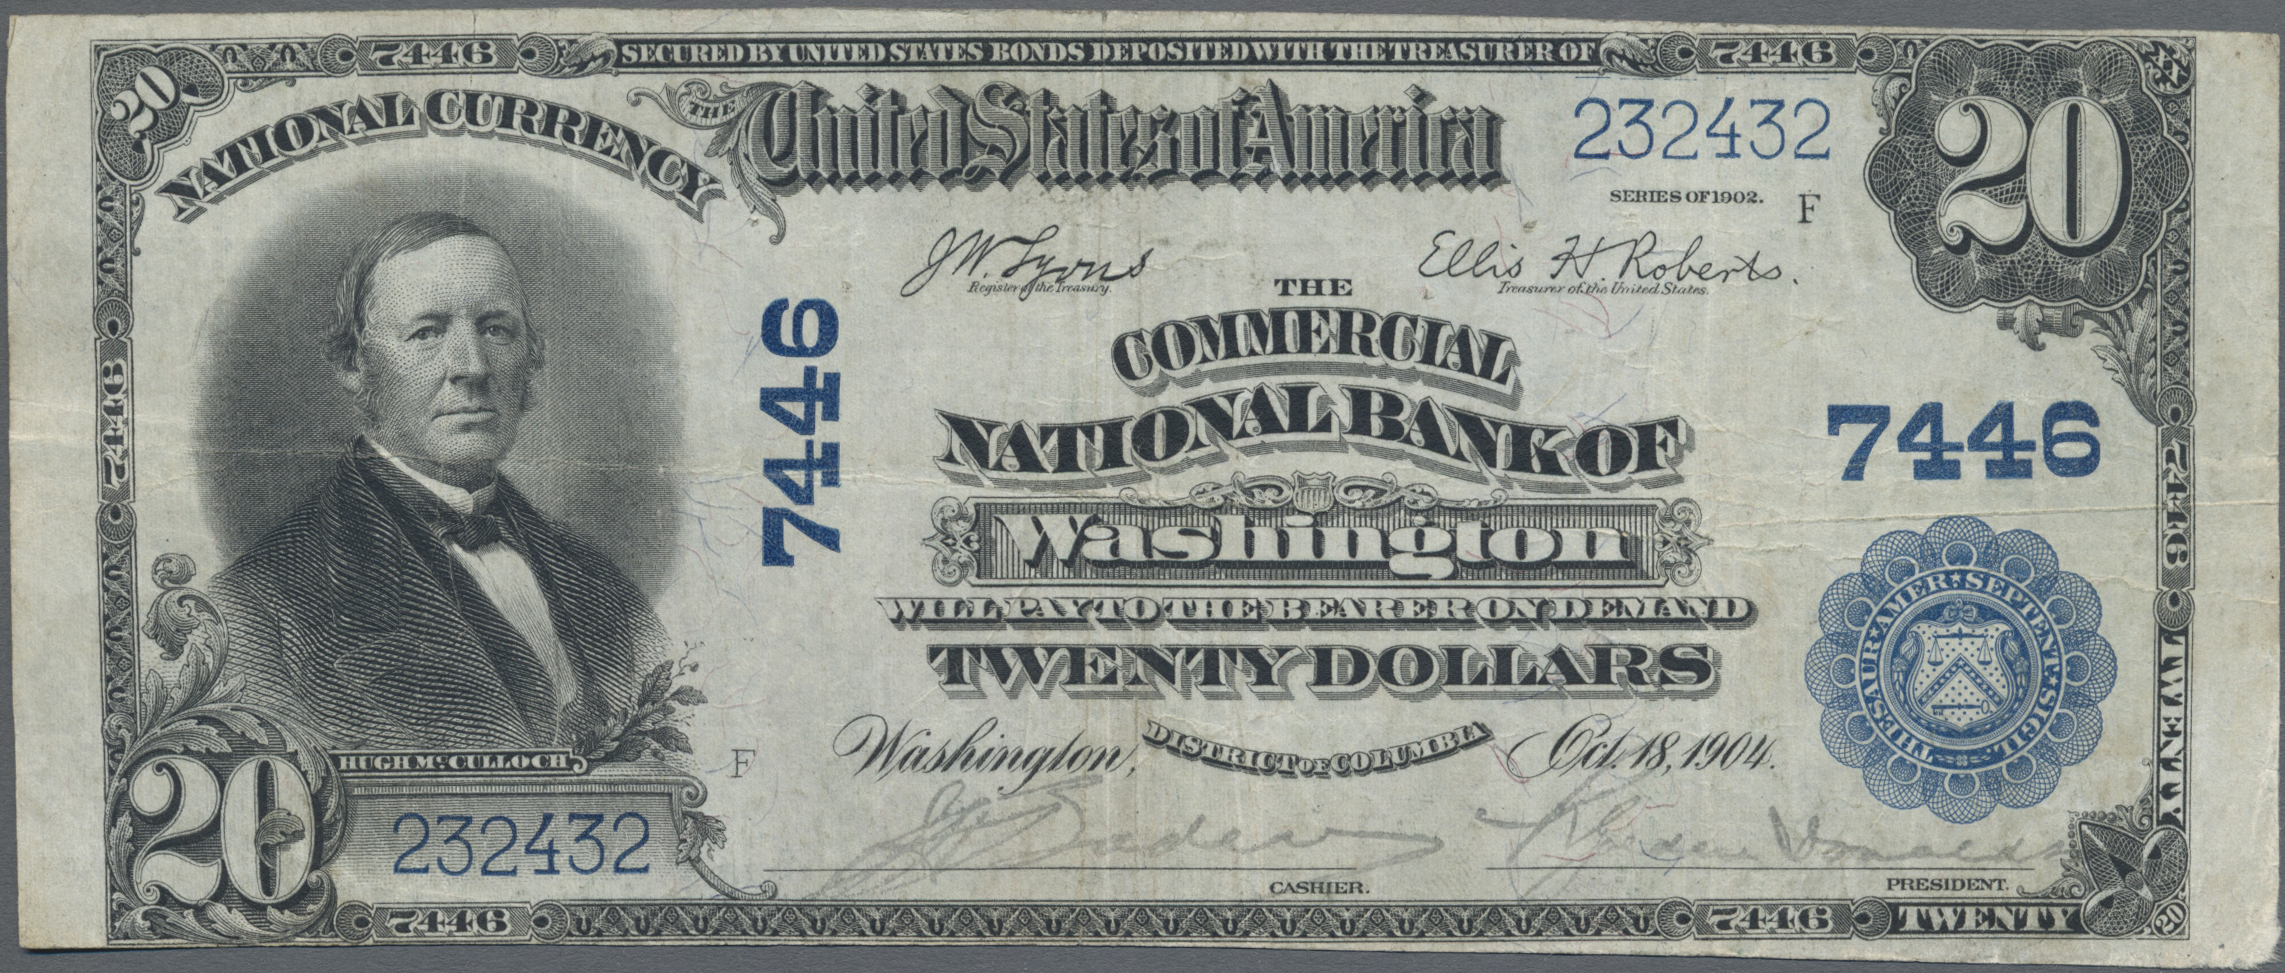 Lot 00911 - United States of America | Banknoten  -  Auktionshaus Christoph Gärtner GmbH & Co. KG Sale #48 The Banknotes